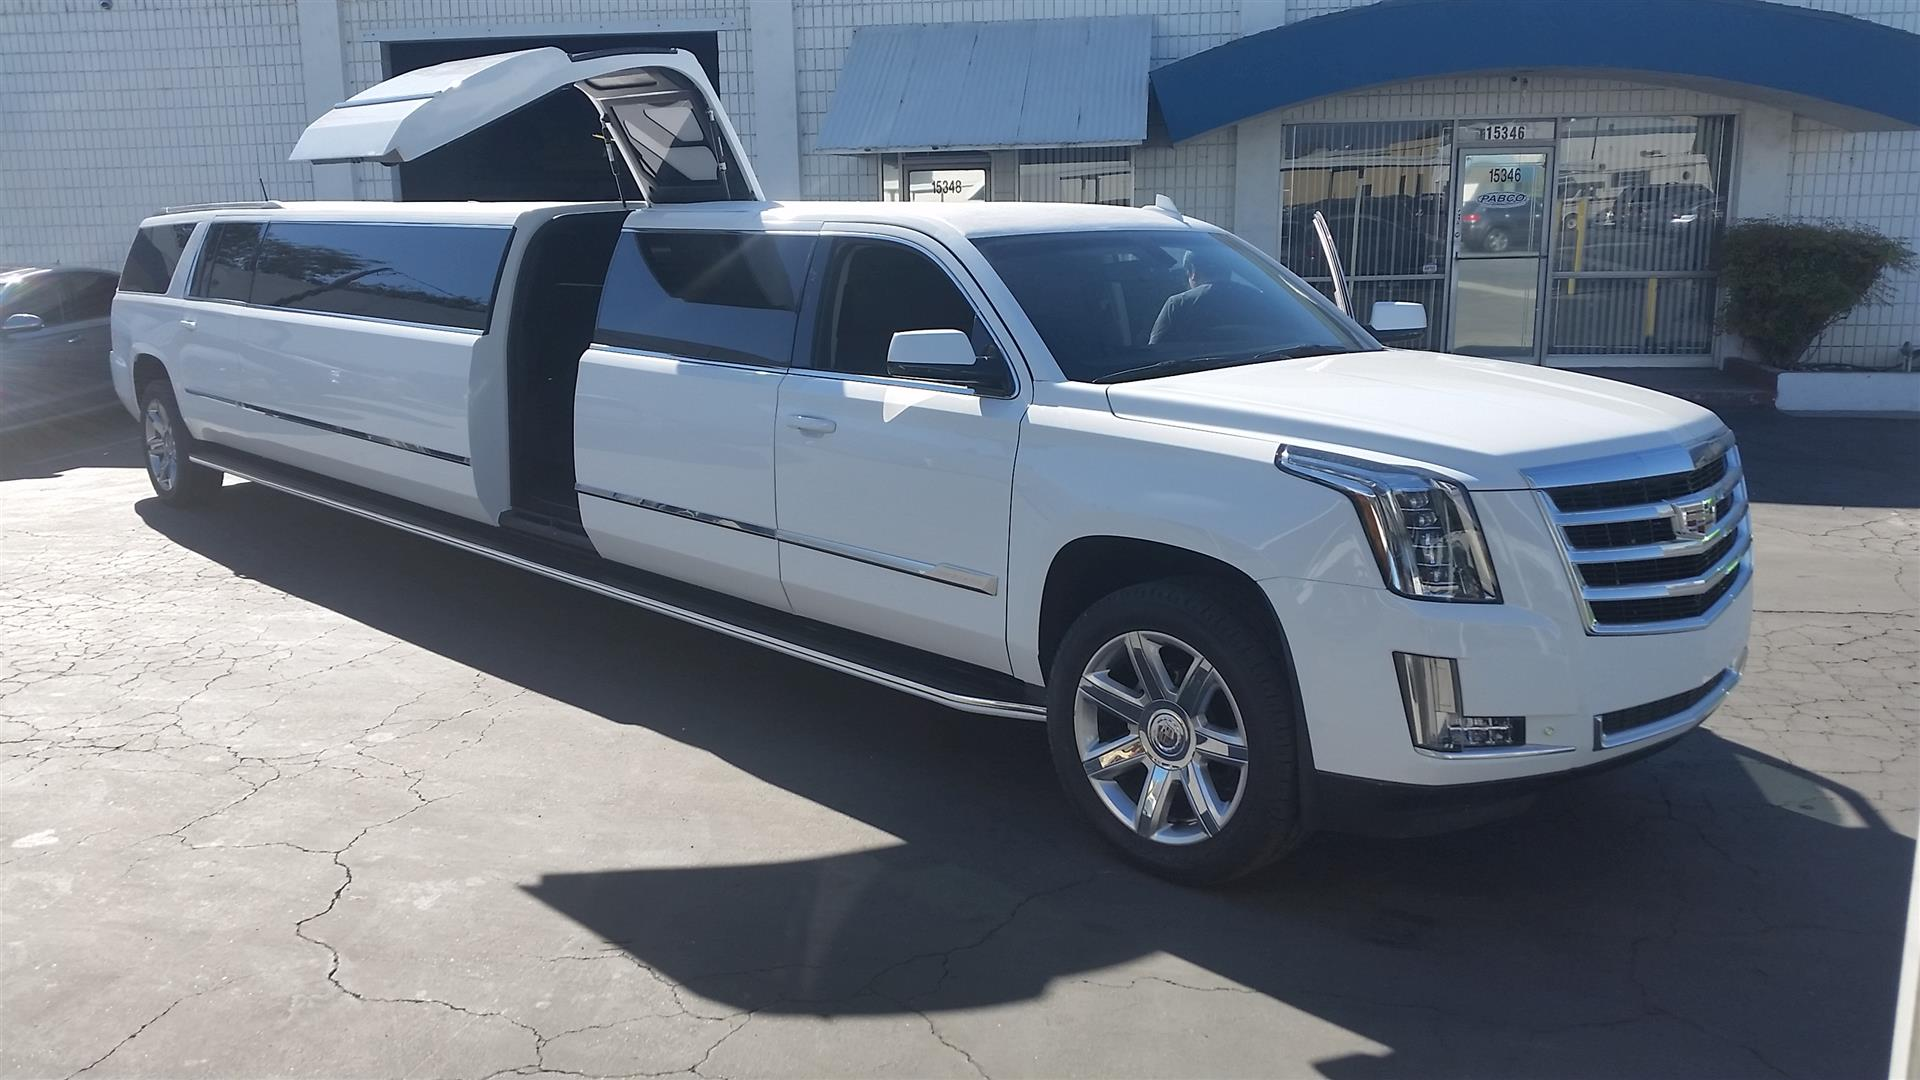 Pinnacle Limousines Manufacturing - City of Industry, CA 91745 - (213)507-5466 | ShowMeLocal.com